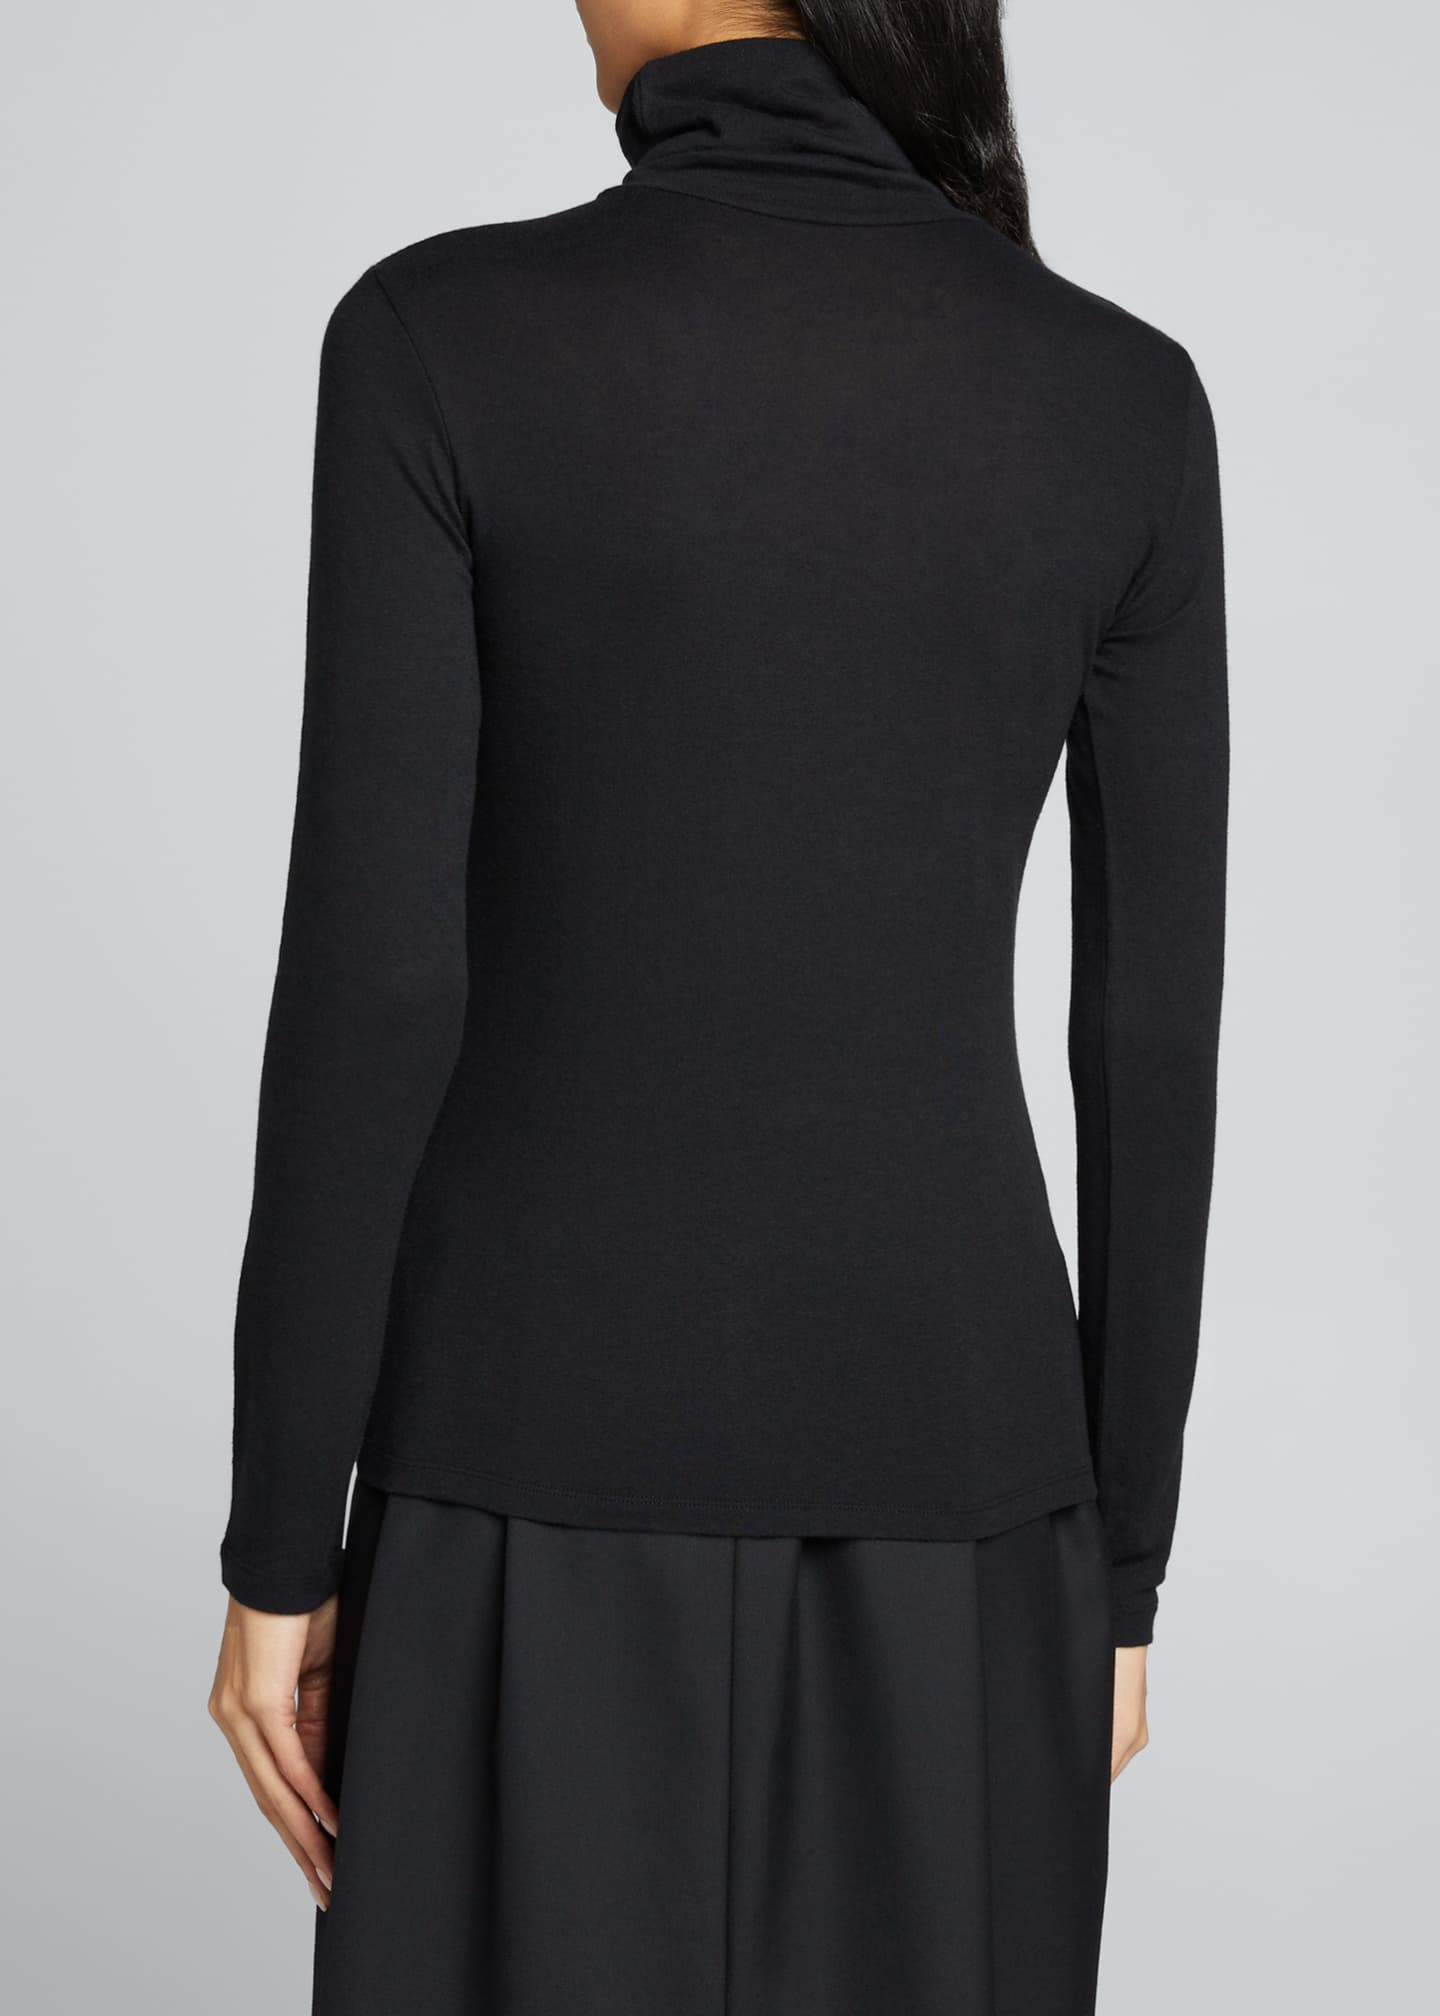 Image 2 of 5: Cotton-Cashmere Long Sleeve Turtleneck Top